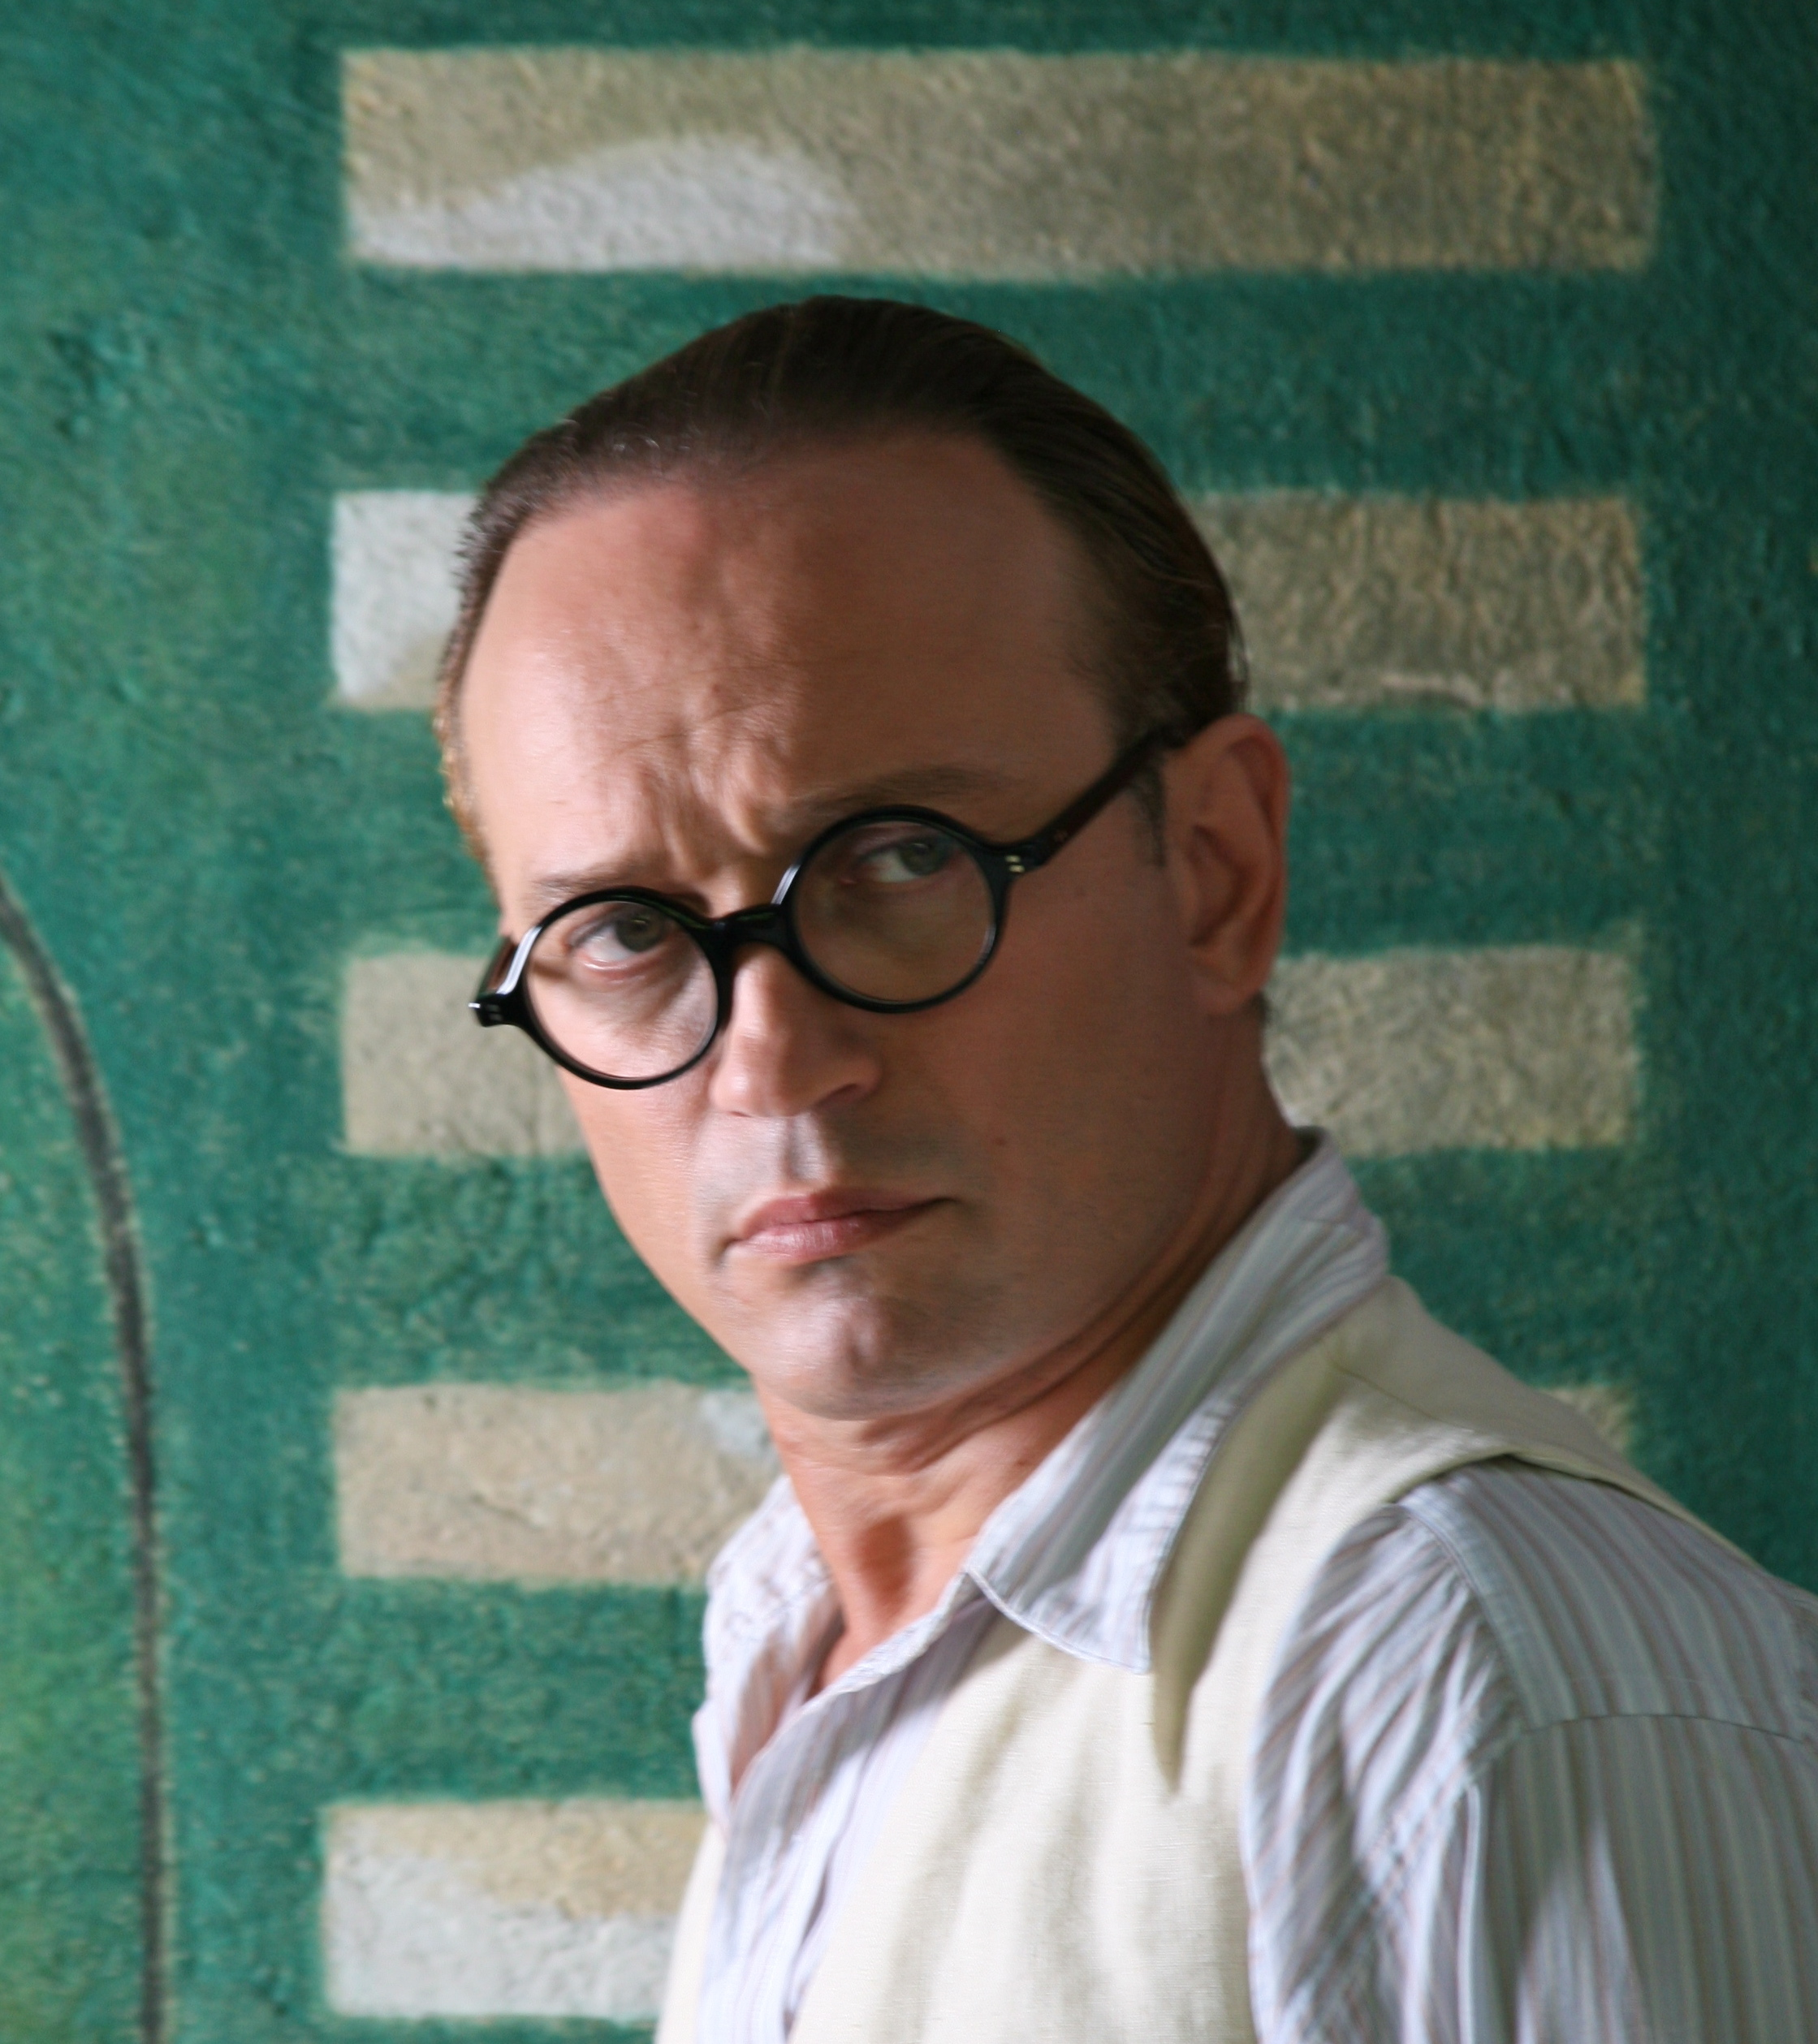 vincent perez as le corbusier